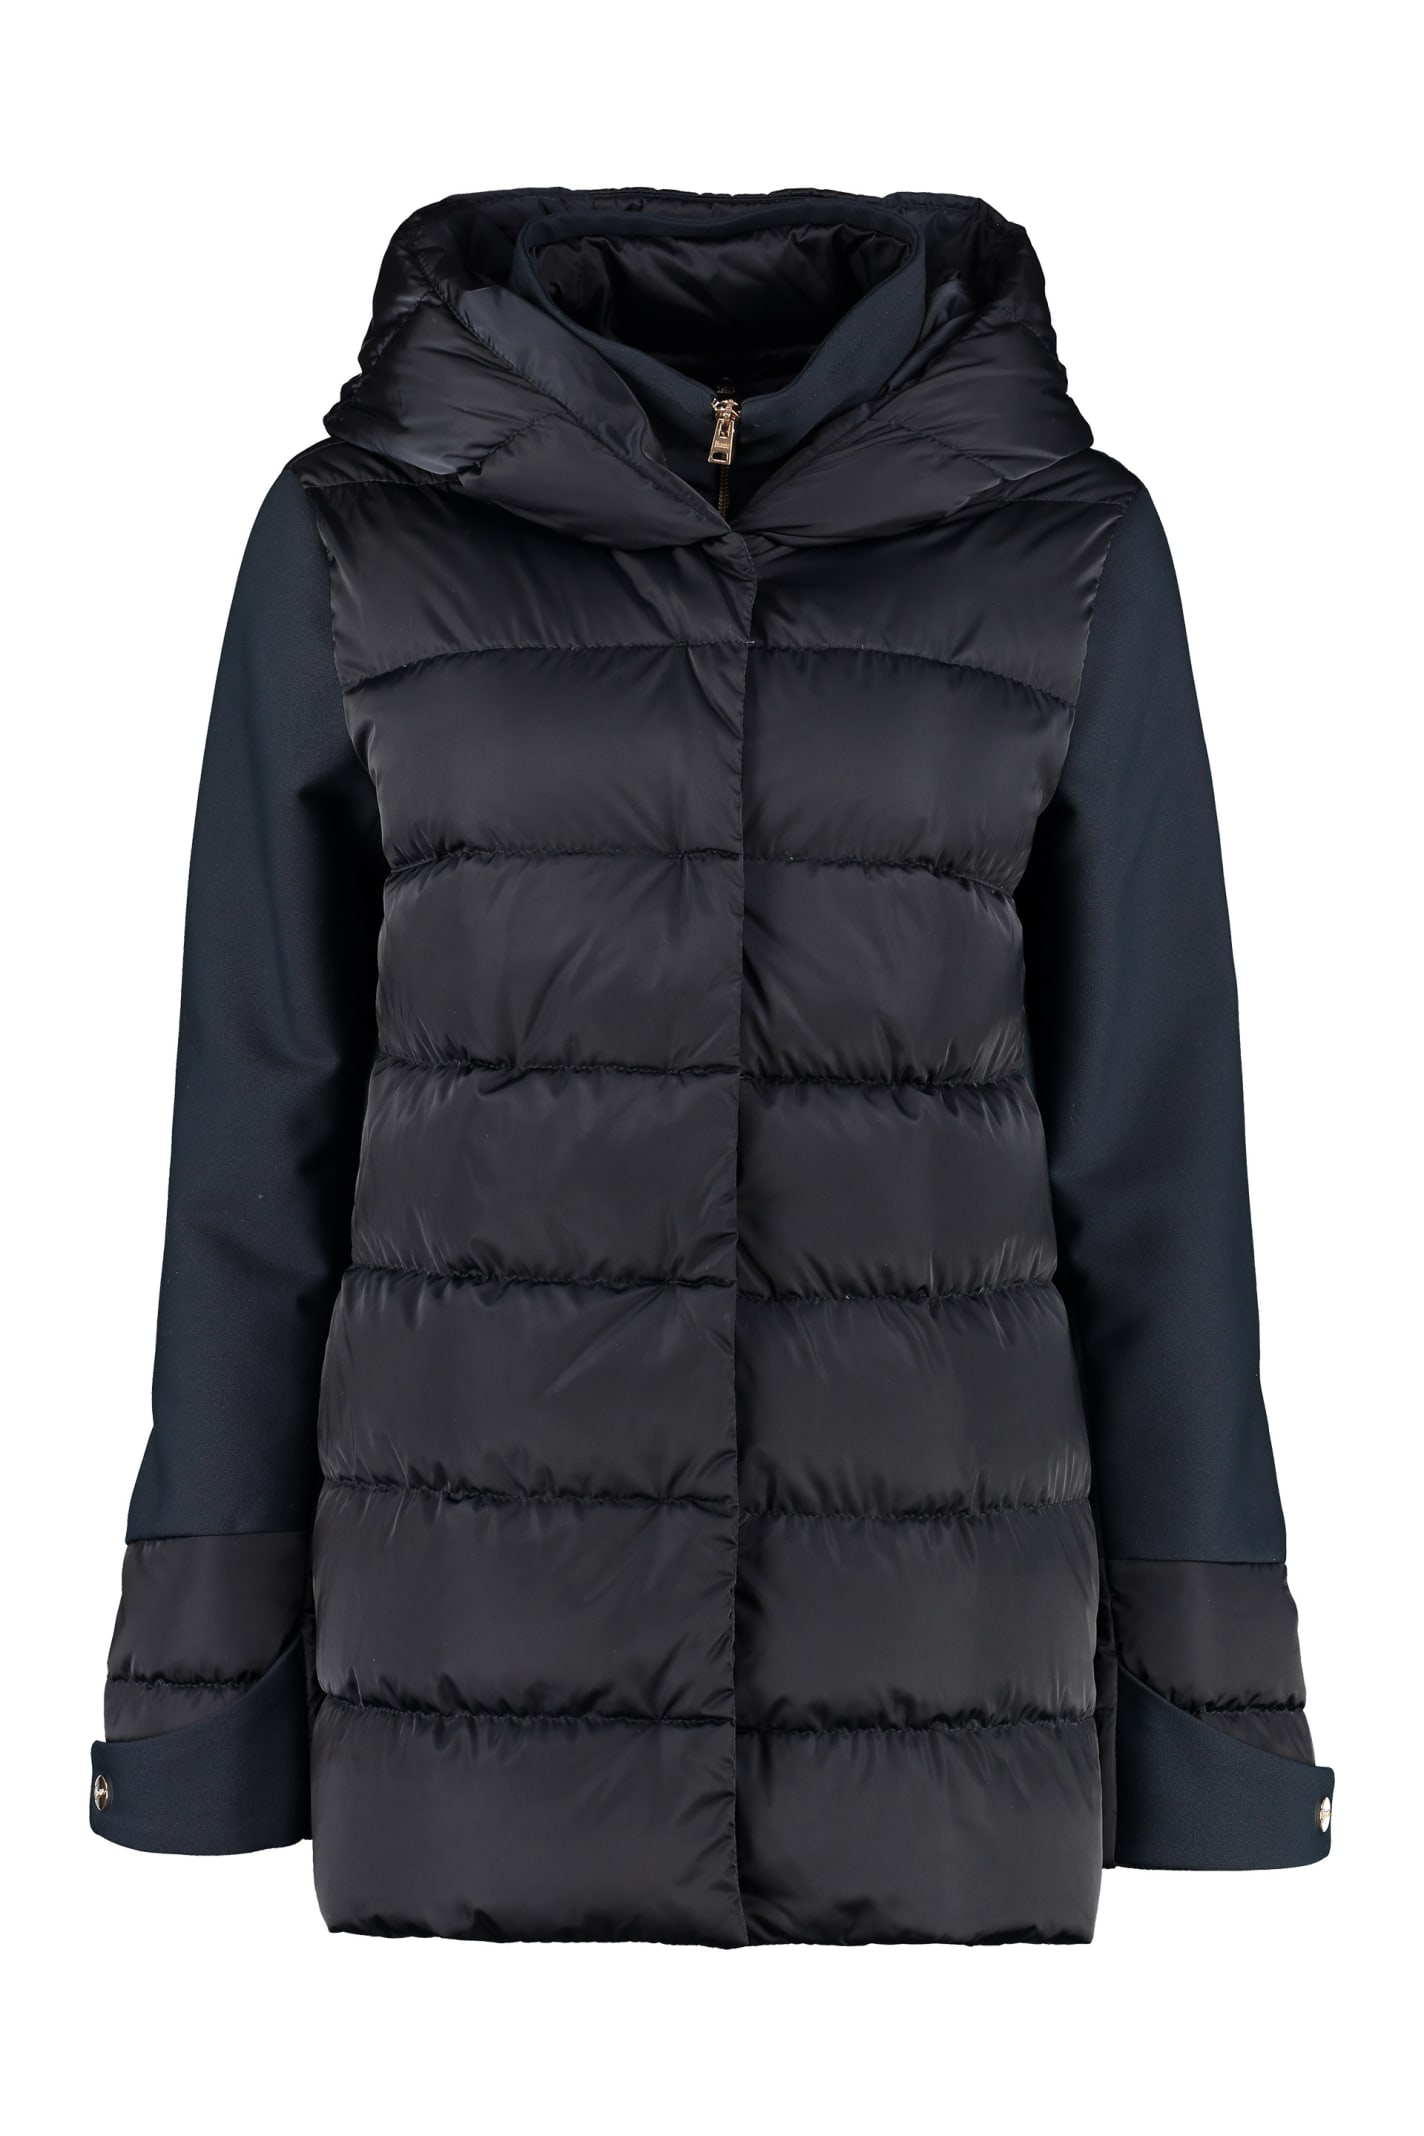 Herno Padded Jacket With Zip And Snaps